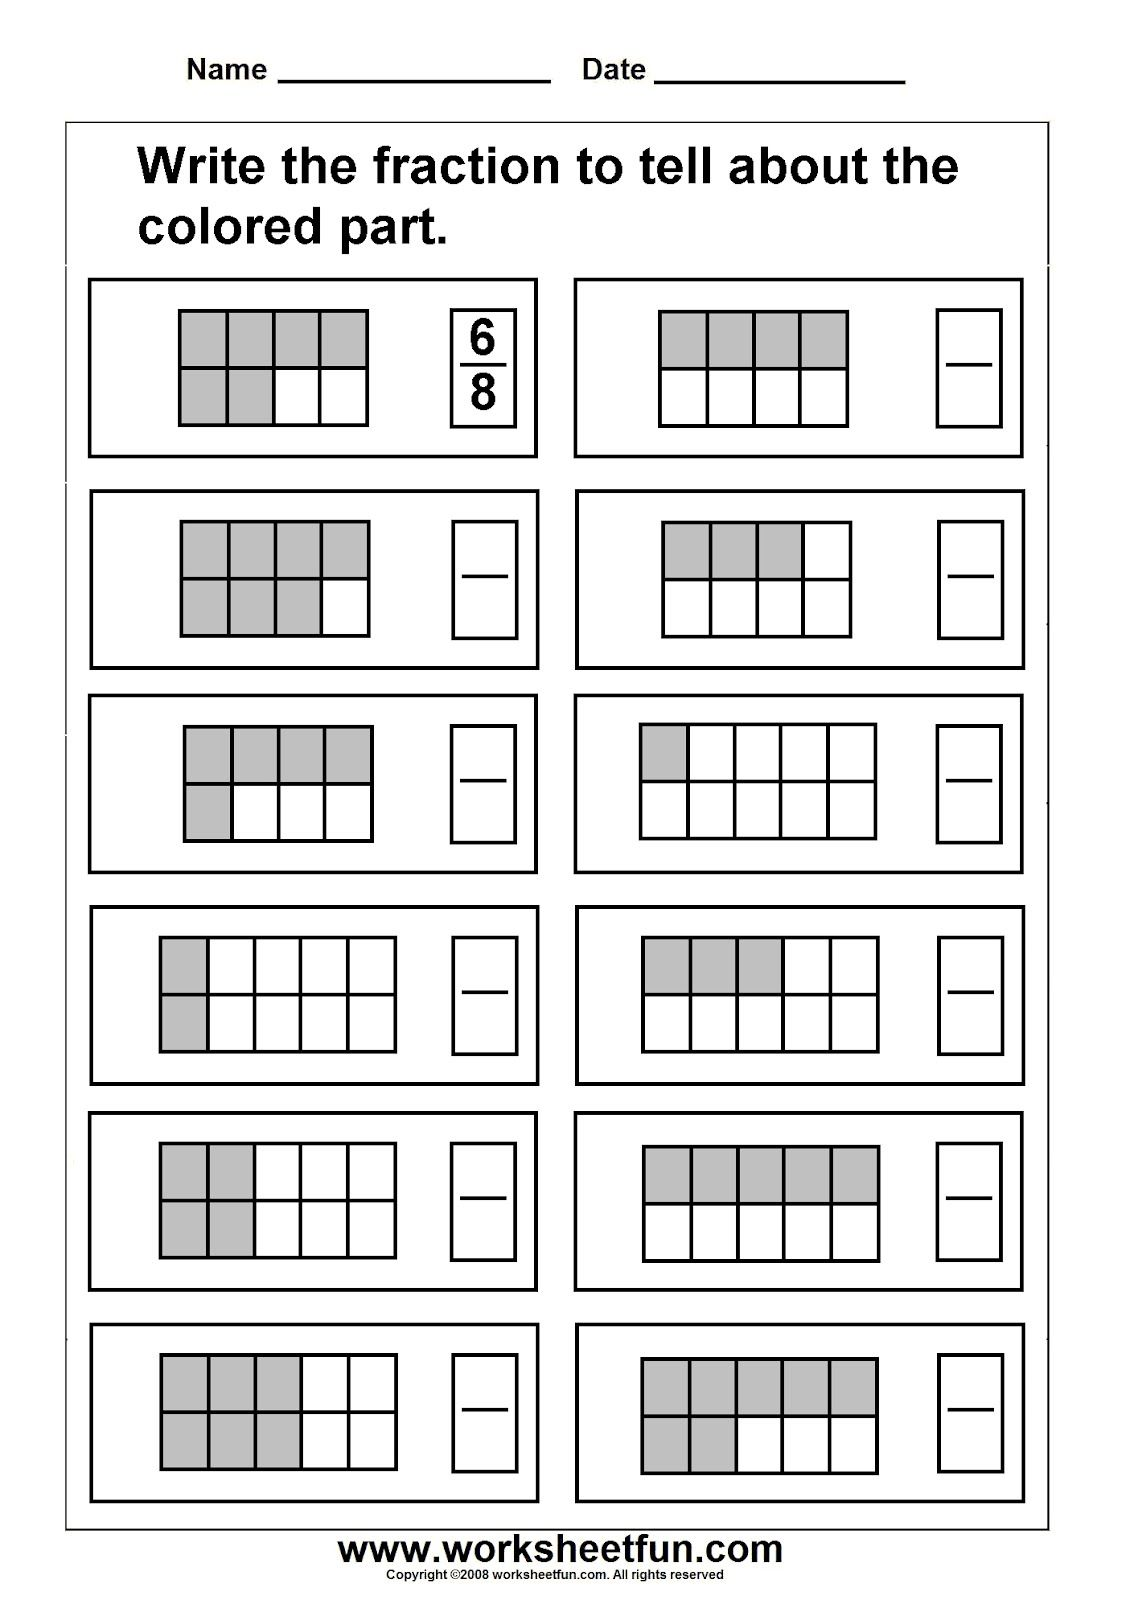 worksheet Grade 2 Fractions Worksheets Free fractions school pinterest free worksheets and math worksheetsfree